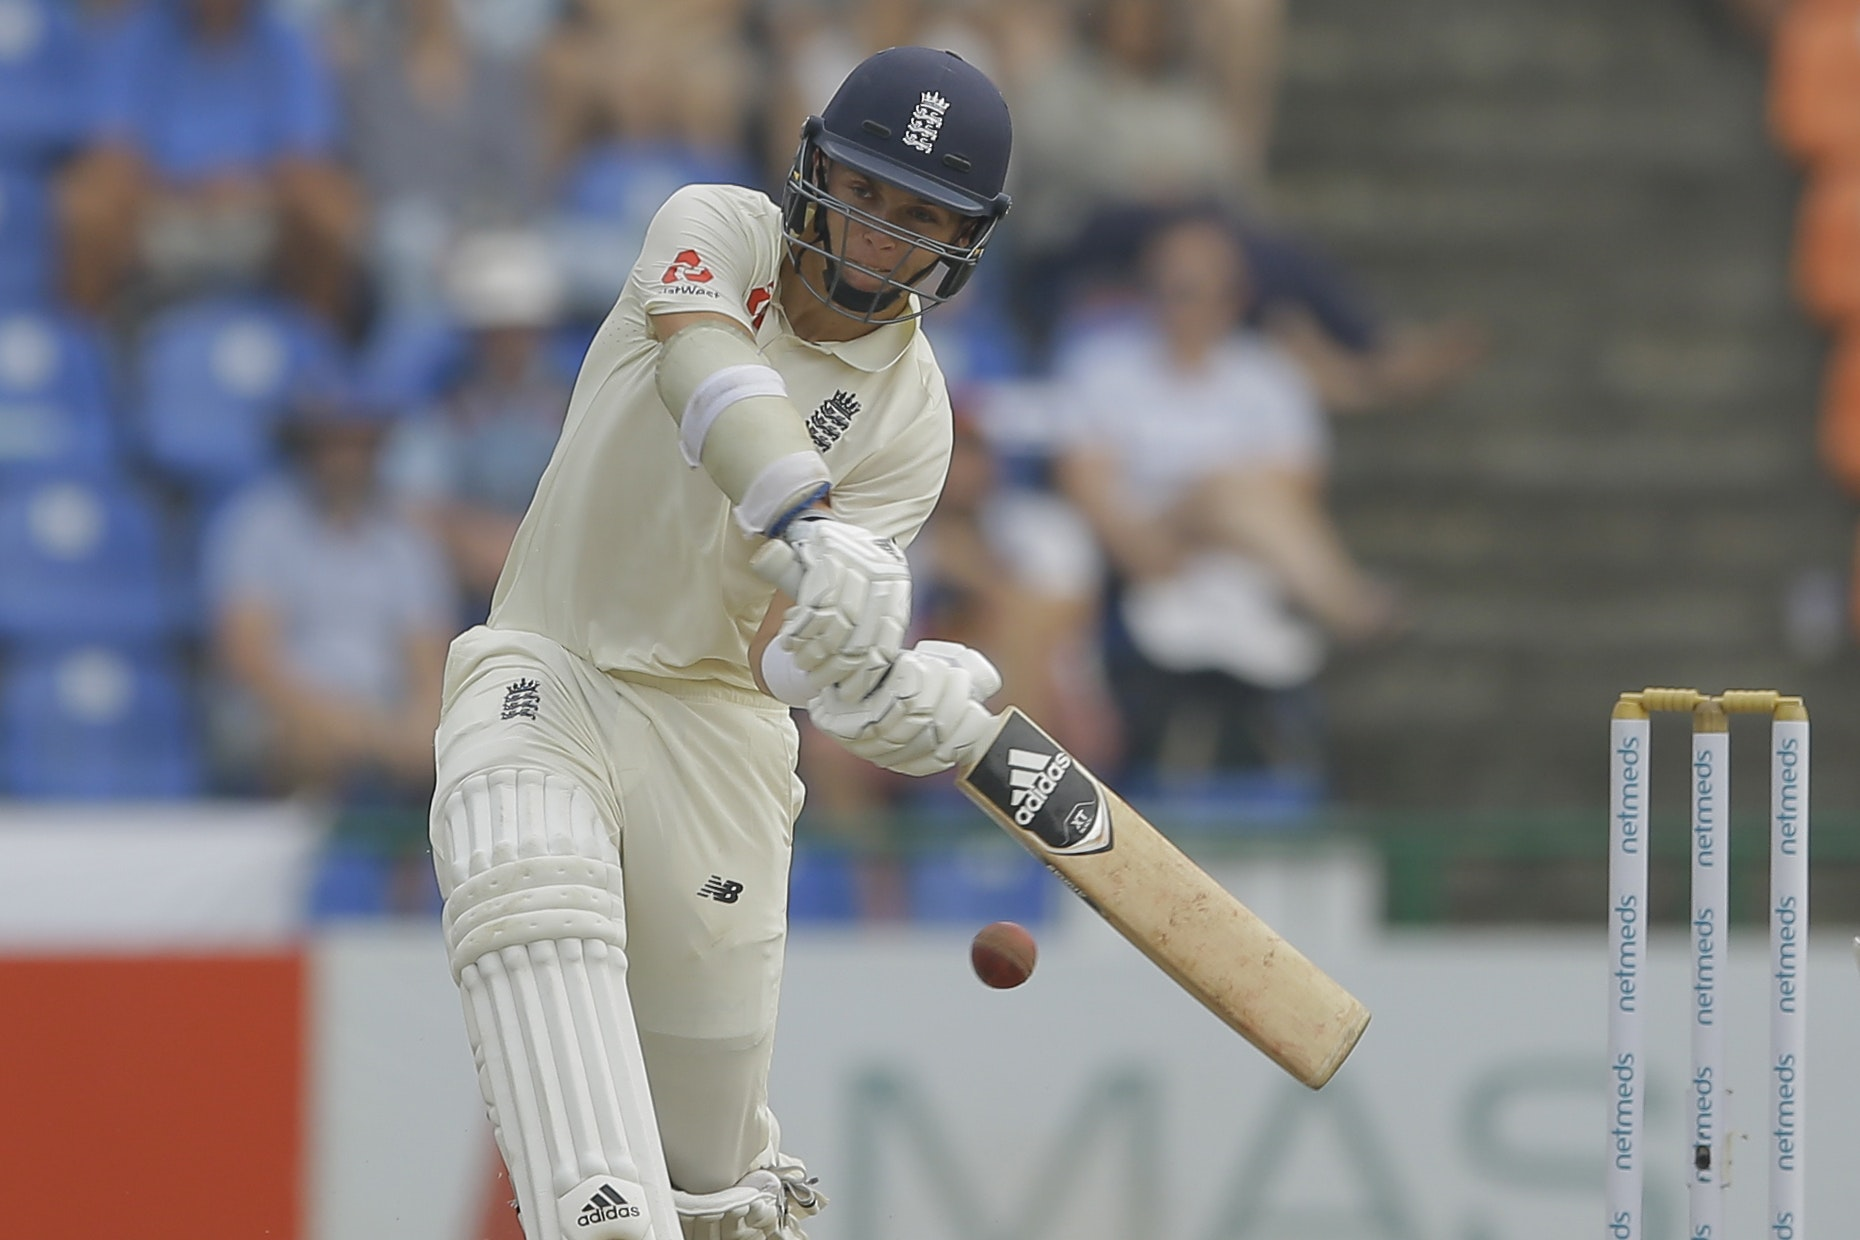 Curran smashes six sixes to lift England out of trouble on opening day